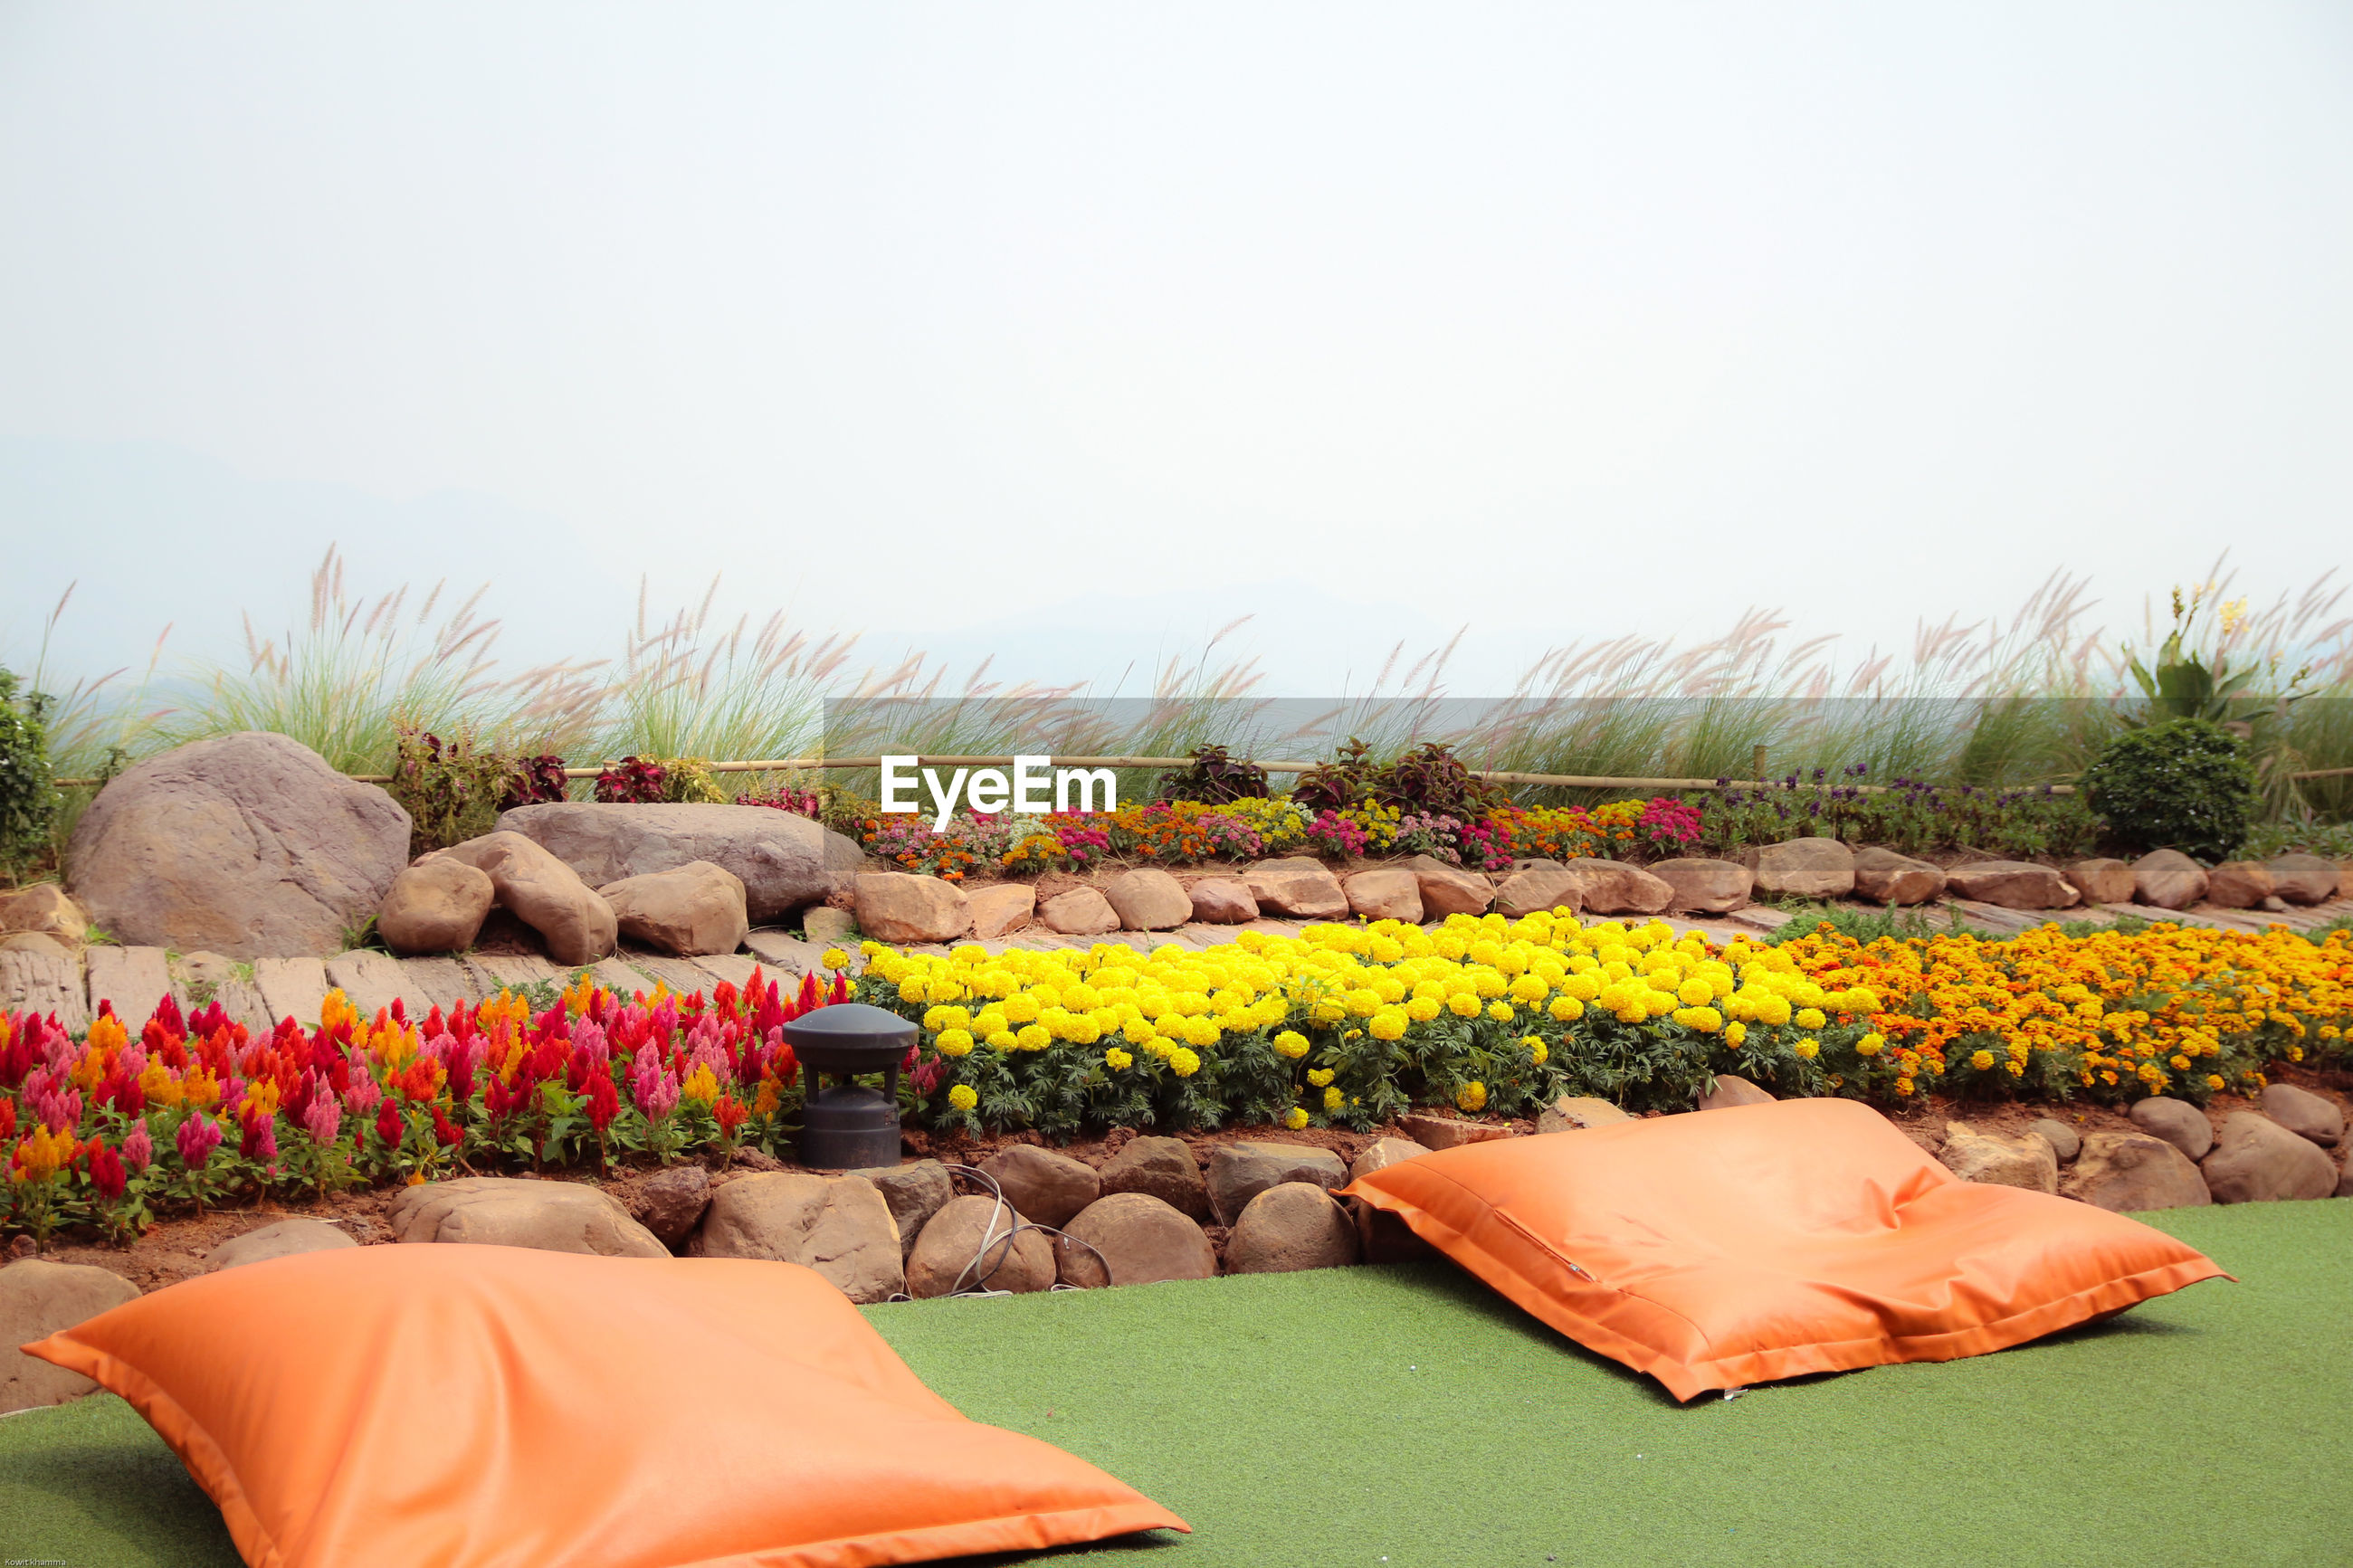 Pillow and flowering plants in garden against sky